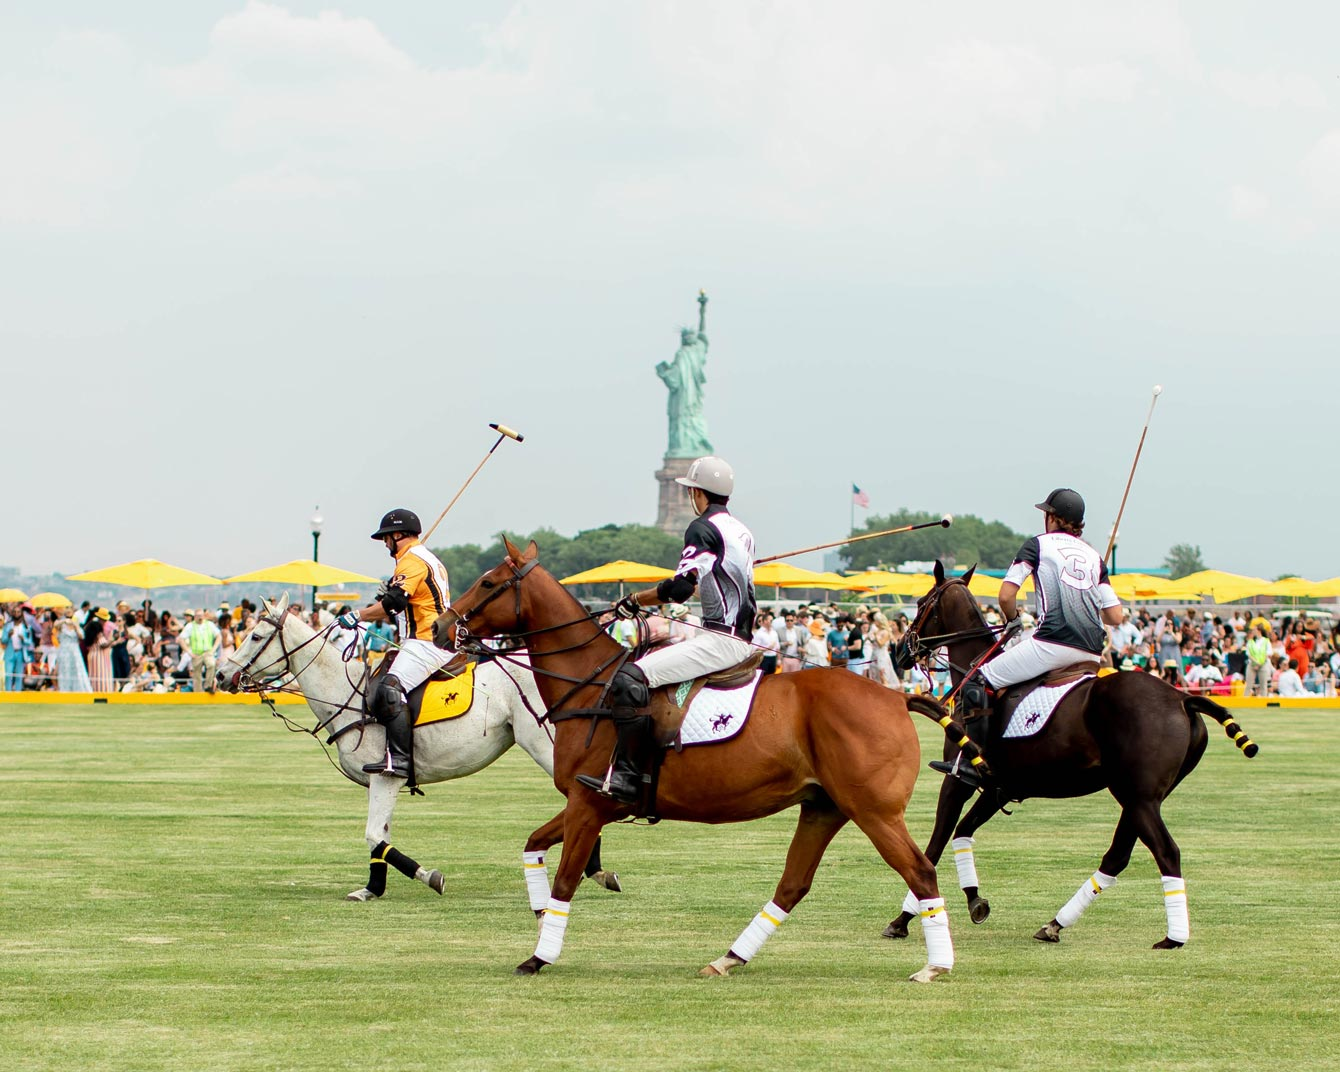 Veuve Clicquot Polo Match